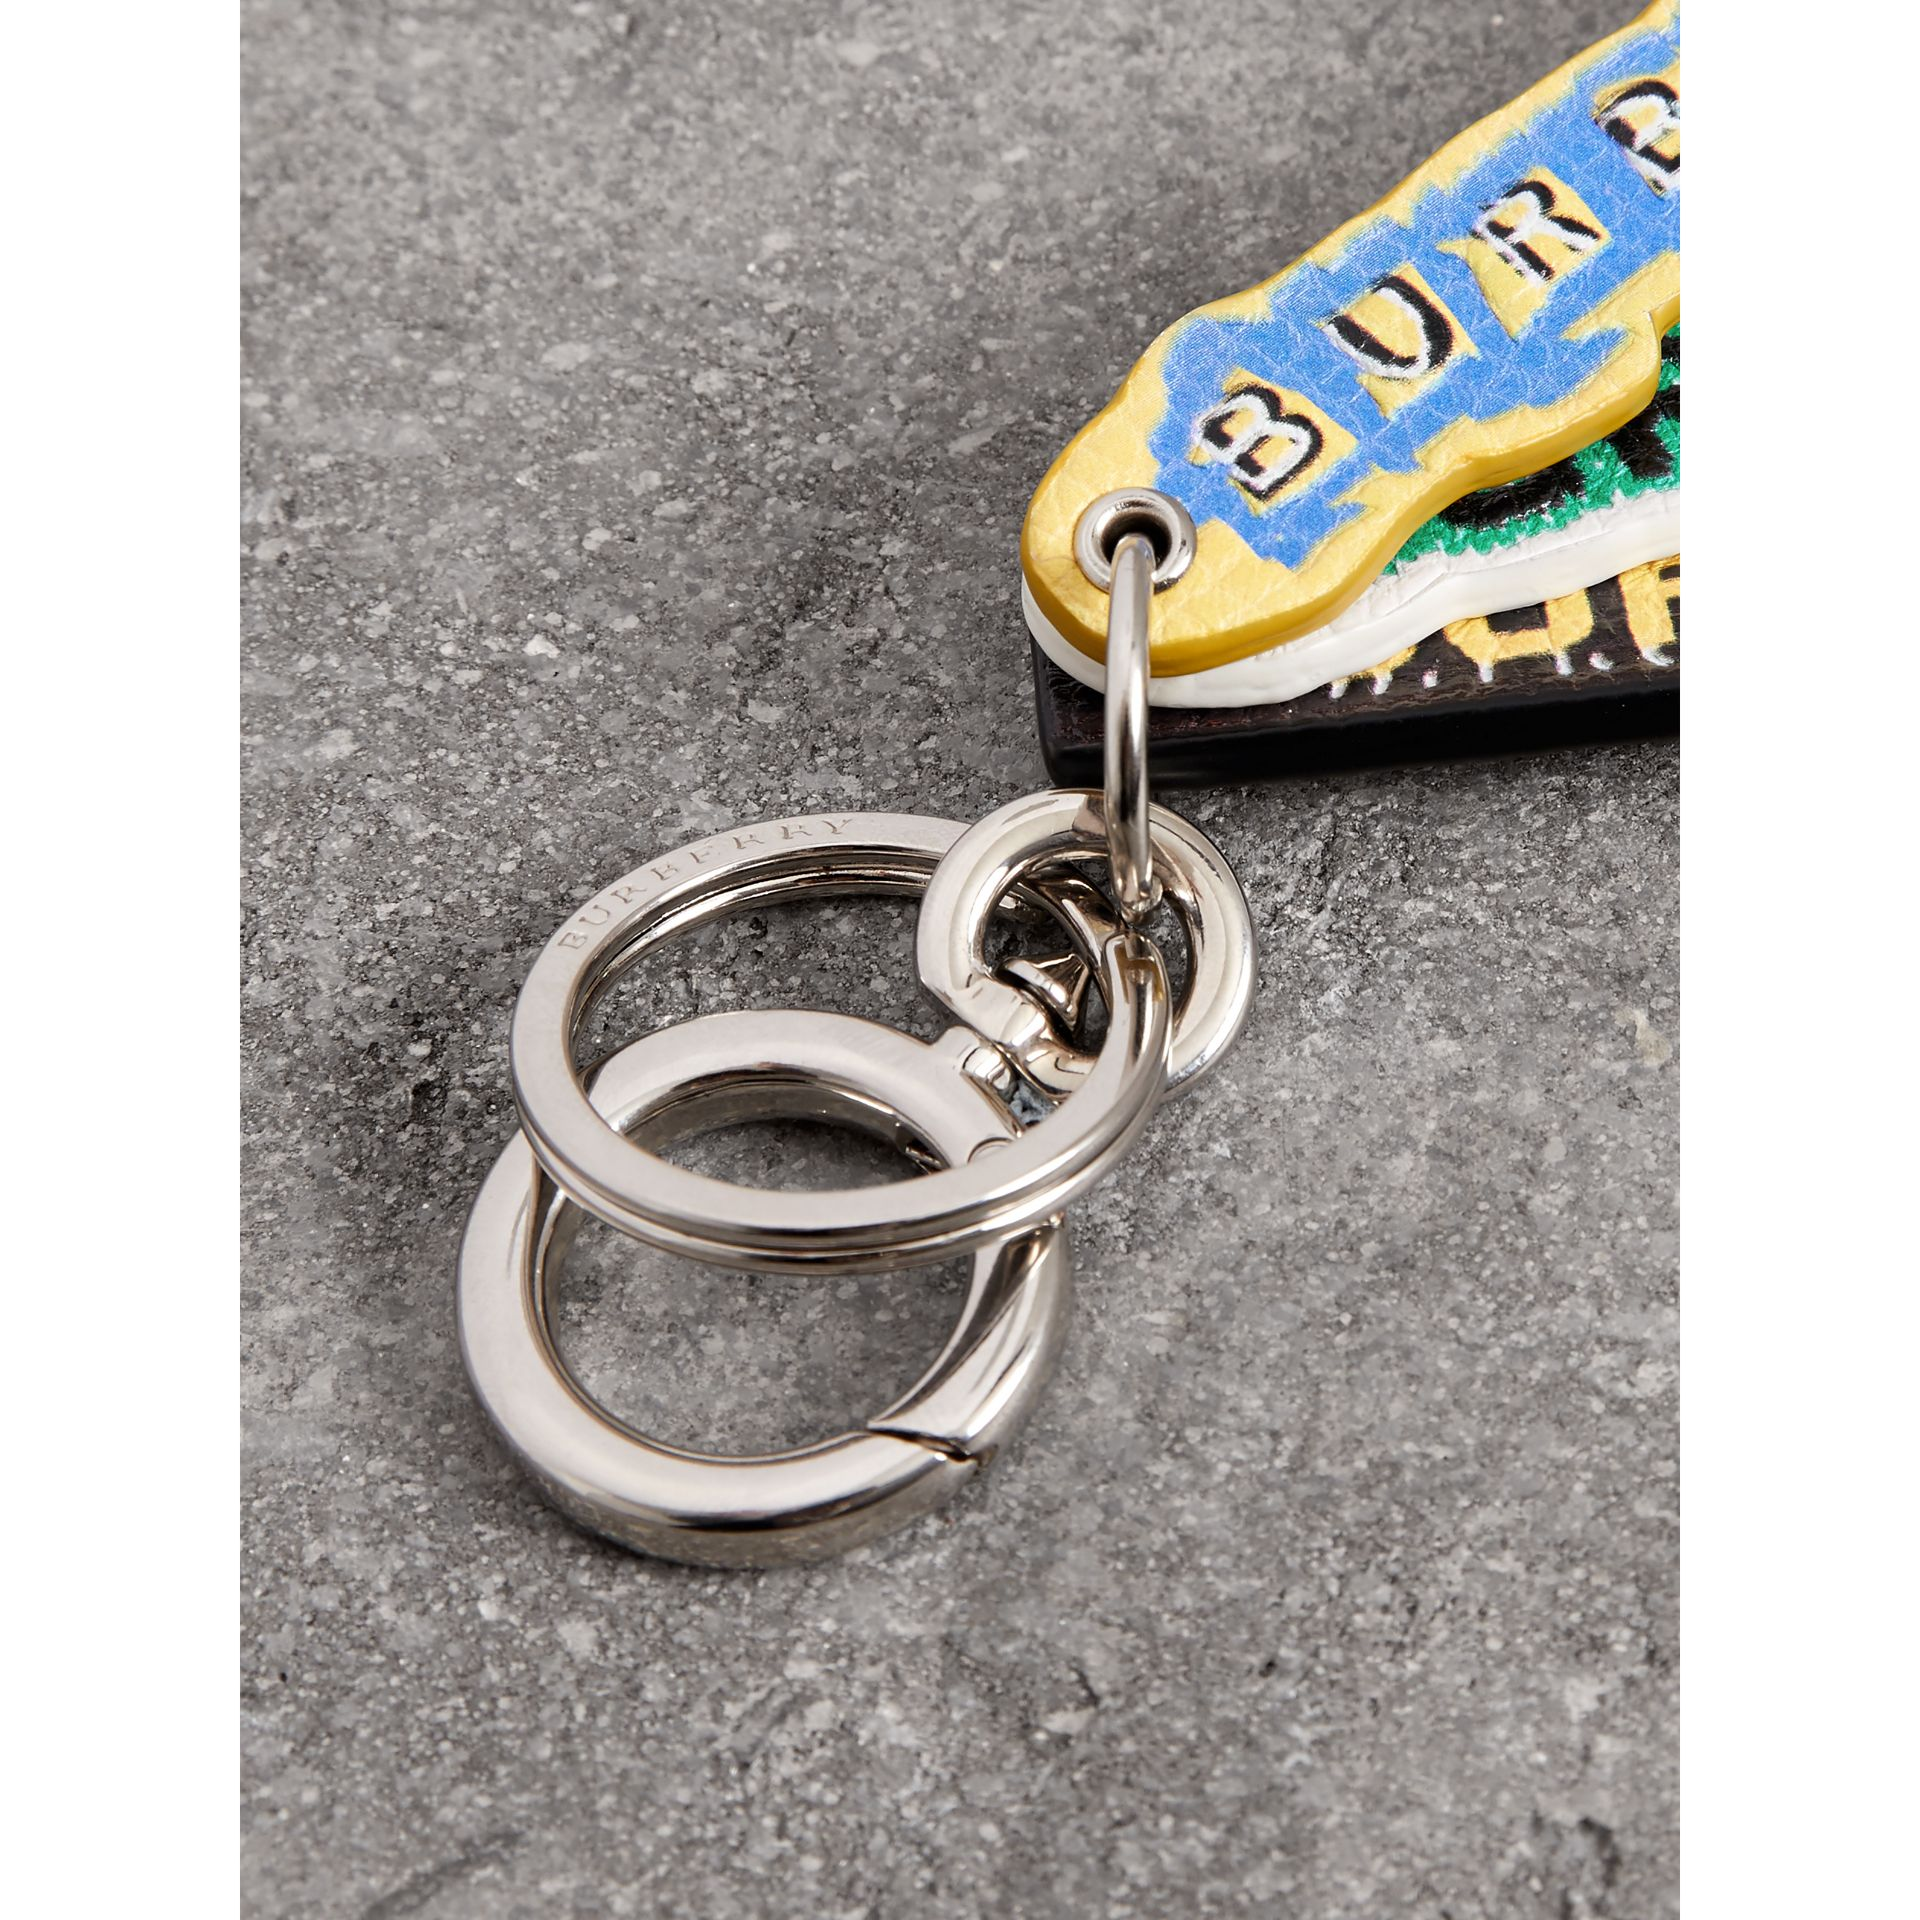 Tag Print Leather Key Chain in Multicolour | Burberry United Kingdom - gallery image 1